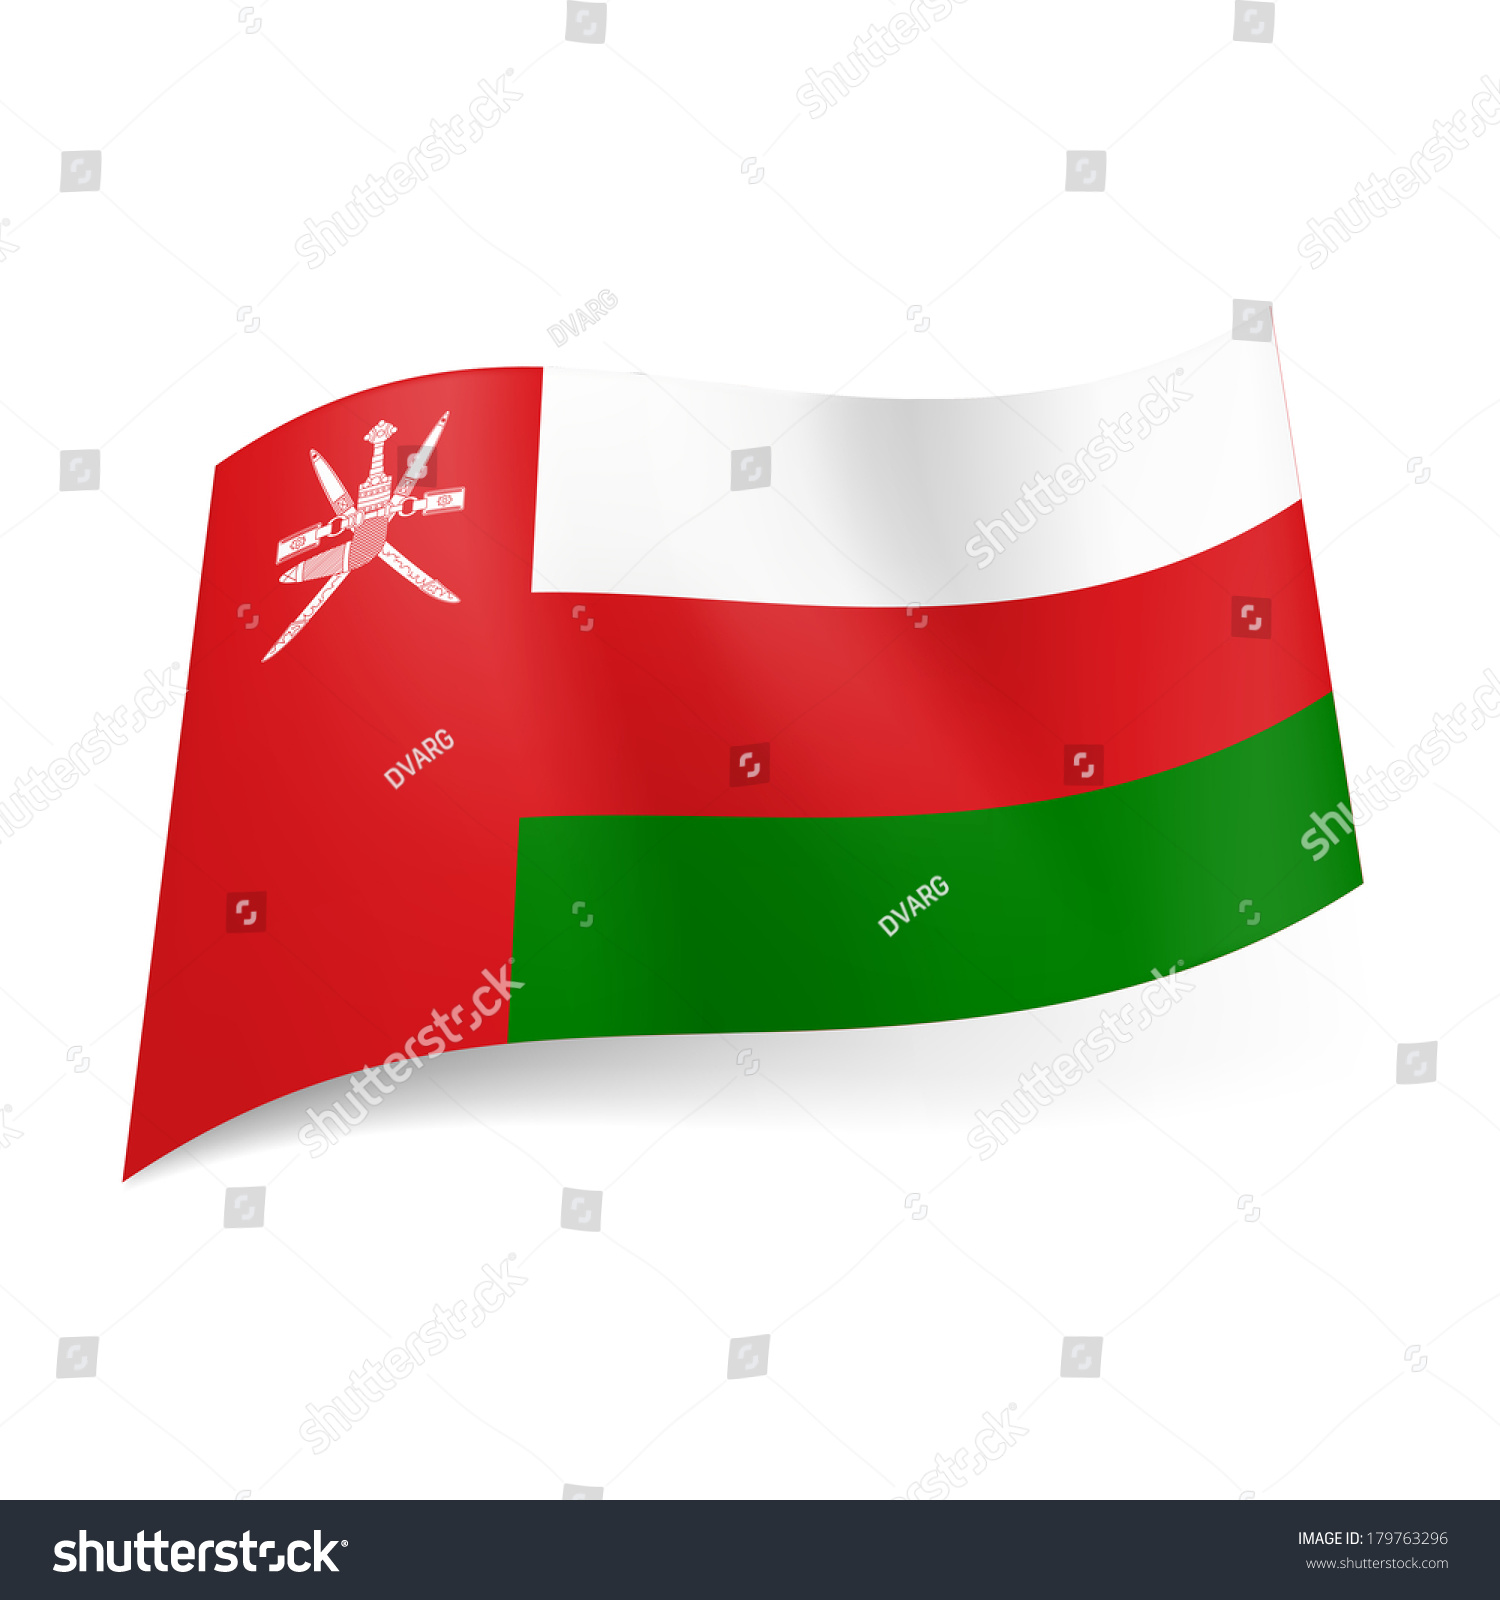 National Flag Of Oman: White, Red And Green Horizontal ... - photo#36